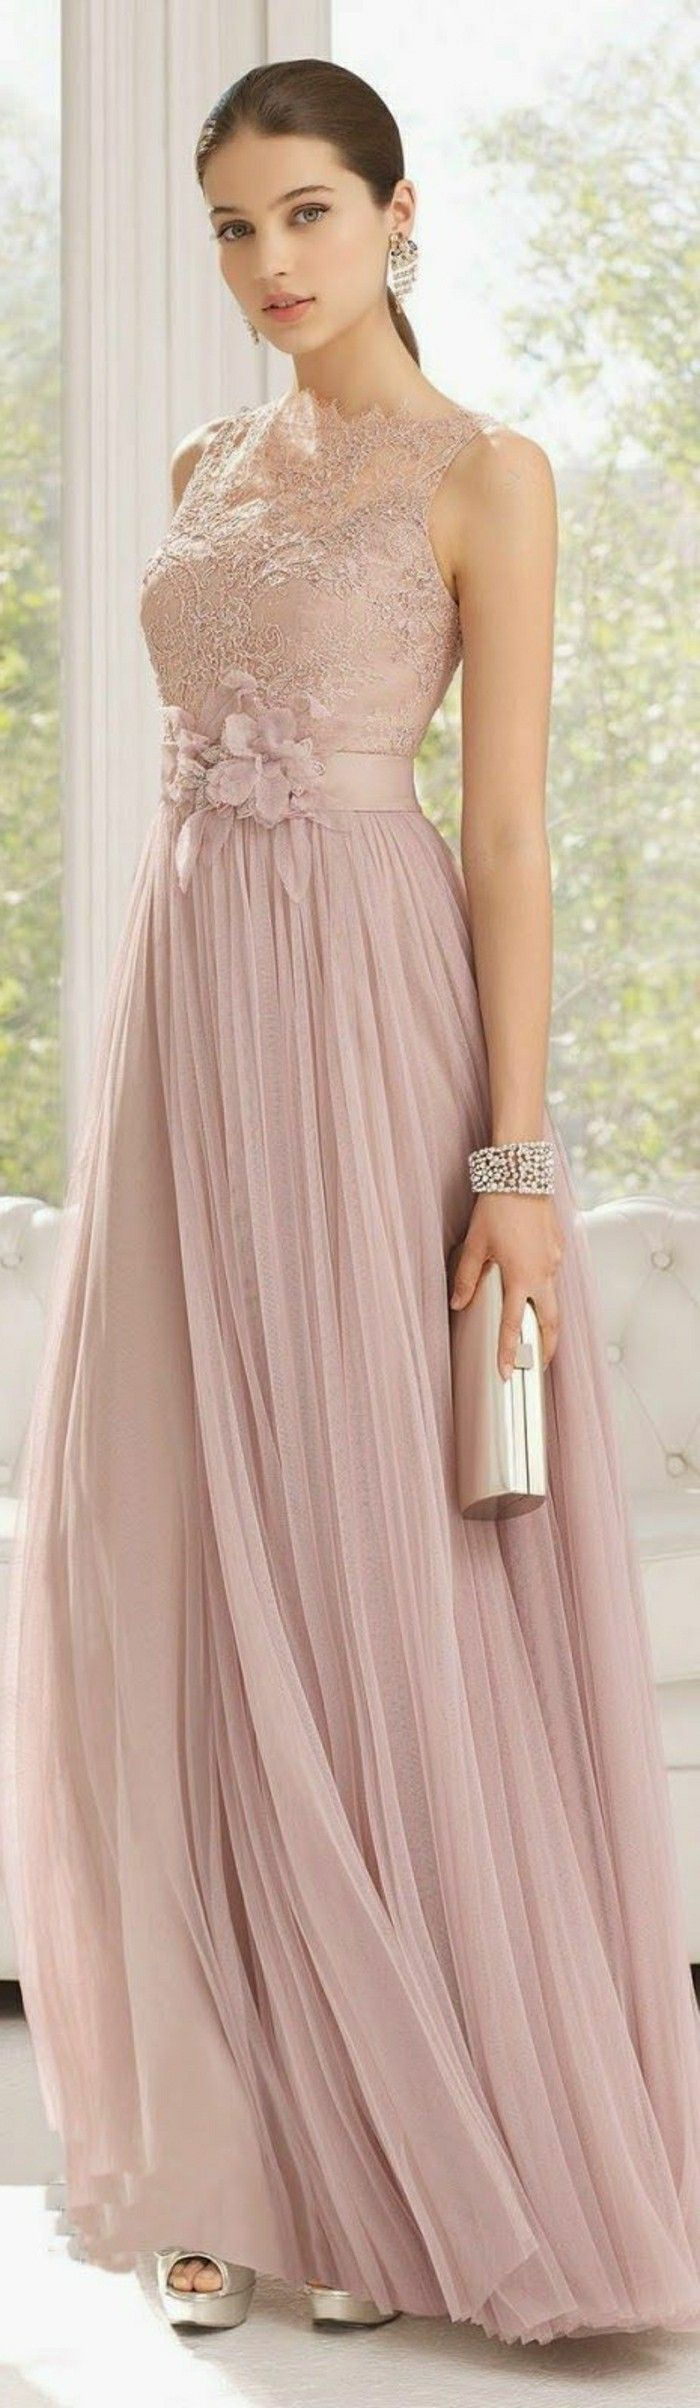 10 best robe soirée, mariage images on Pinterest | Formal maxi ...